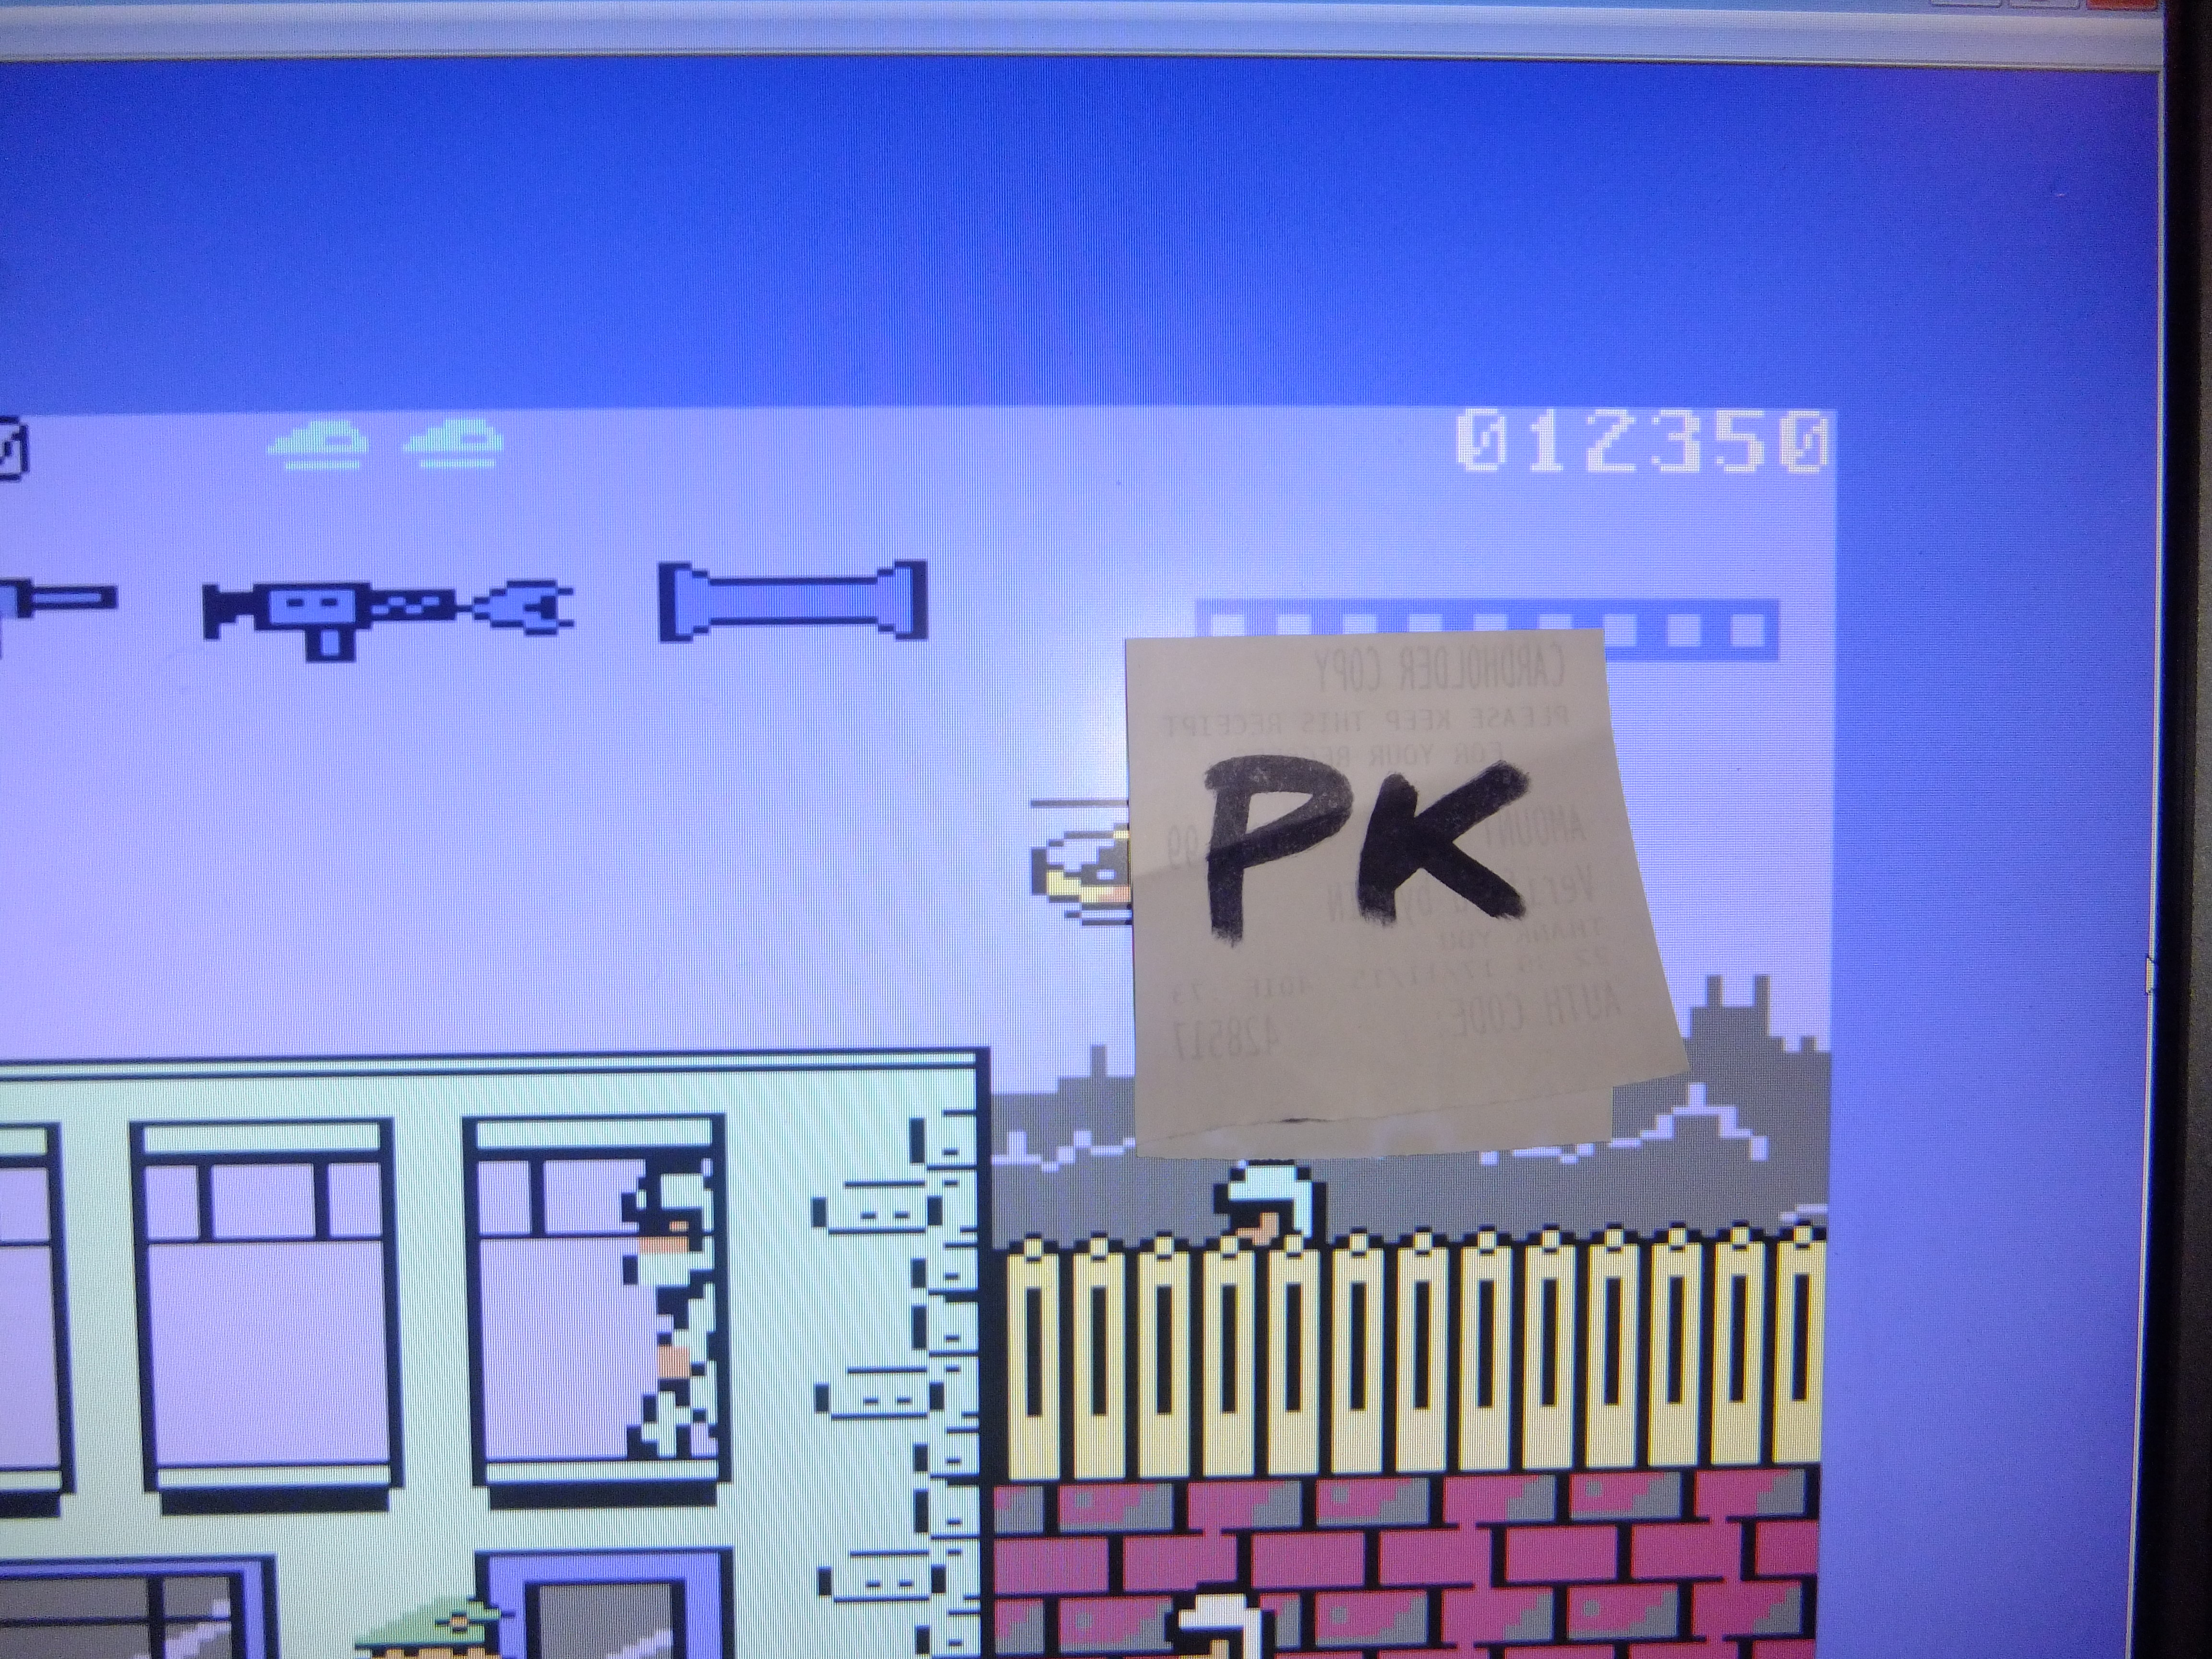 kernzy: Bazooka Bill (Commodore 64 Emulated) 12,350 points on 2015-11-25 05:32:15